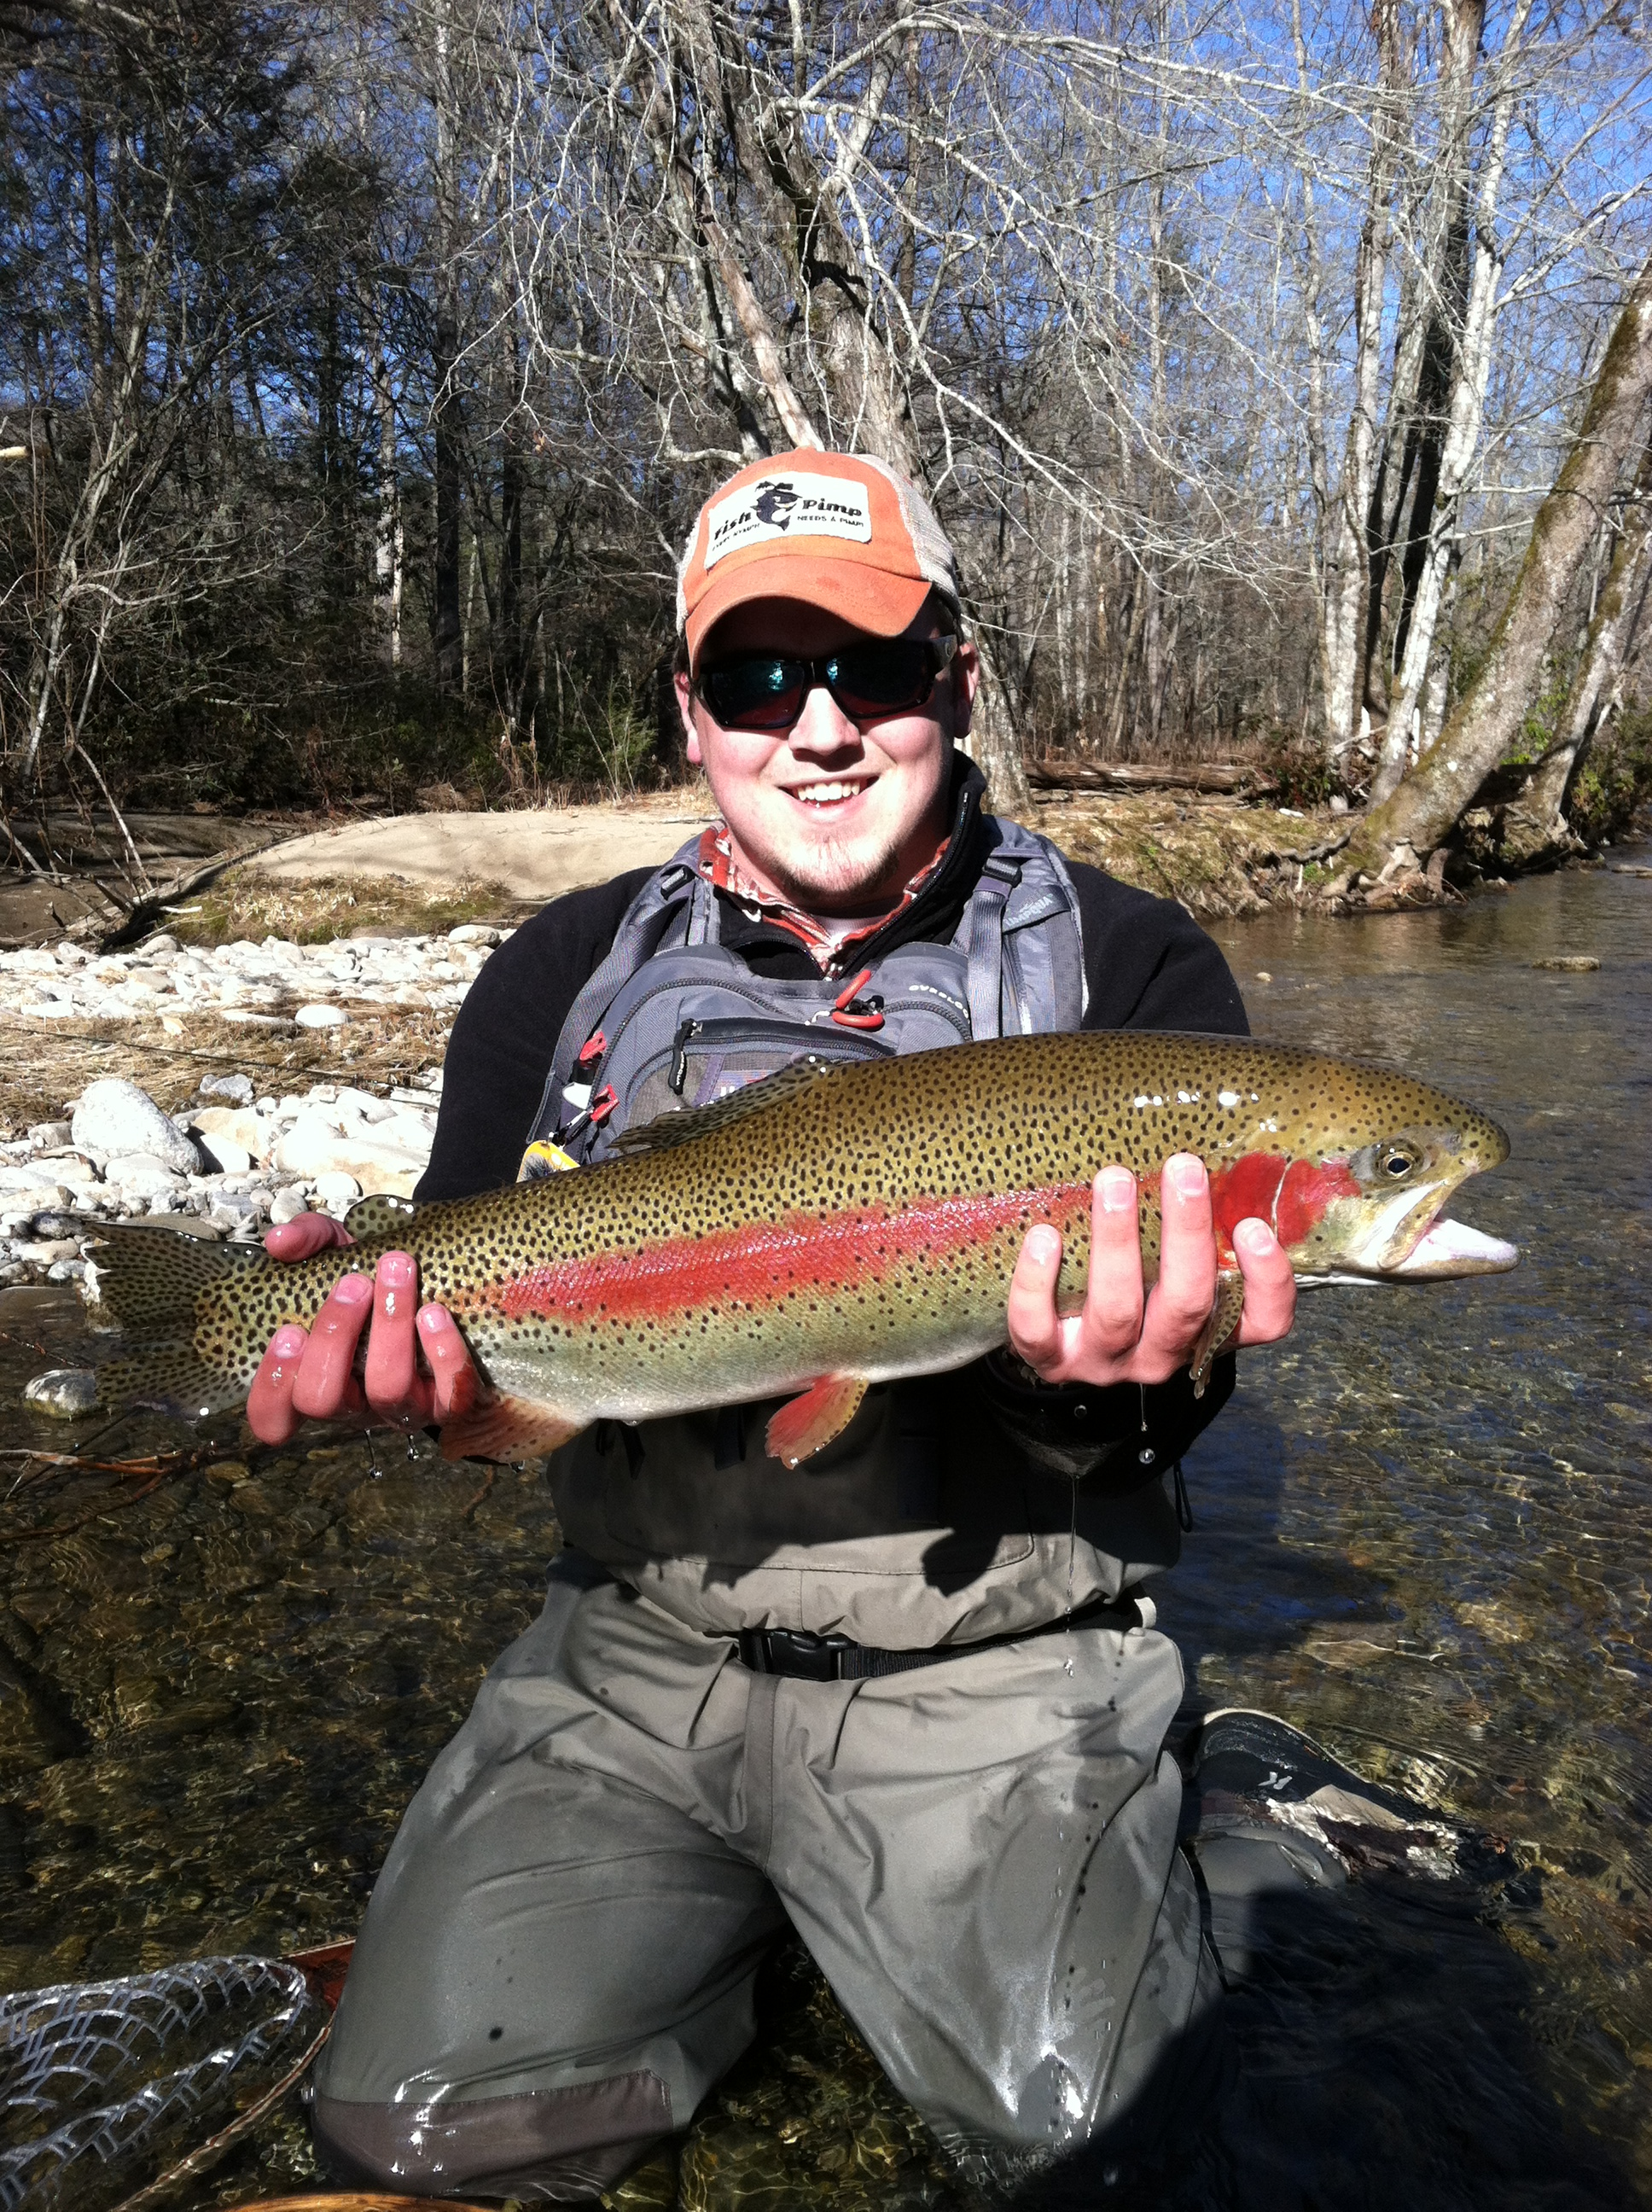 Fly Fishing Cherokee Nc Of Guided Fly Fishing On The Wnc Fly Fishing Trail Hookers